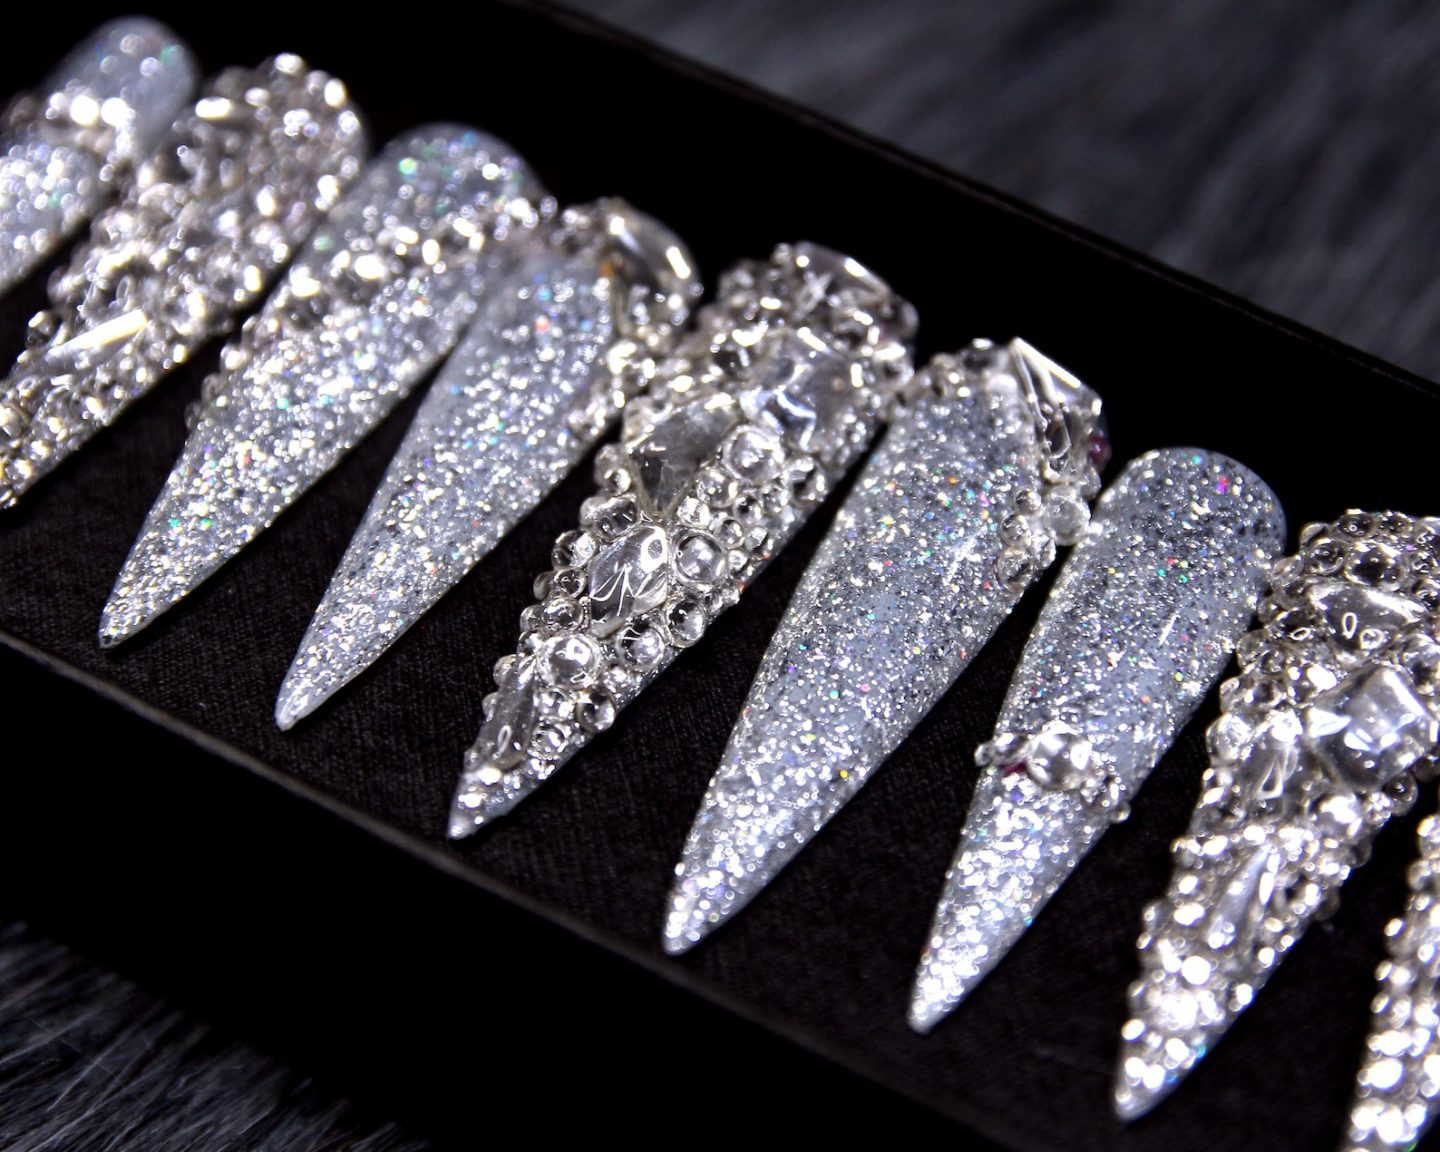 Long silver stiletto nails with rhinestones